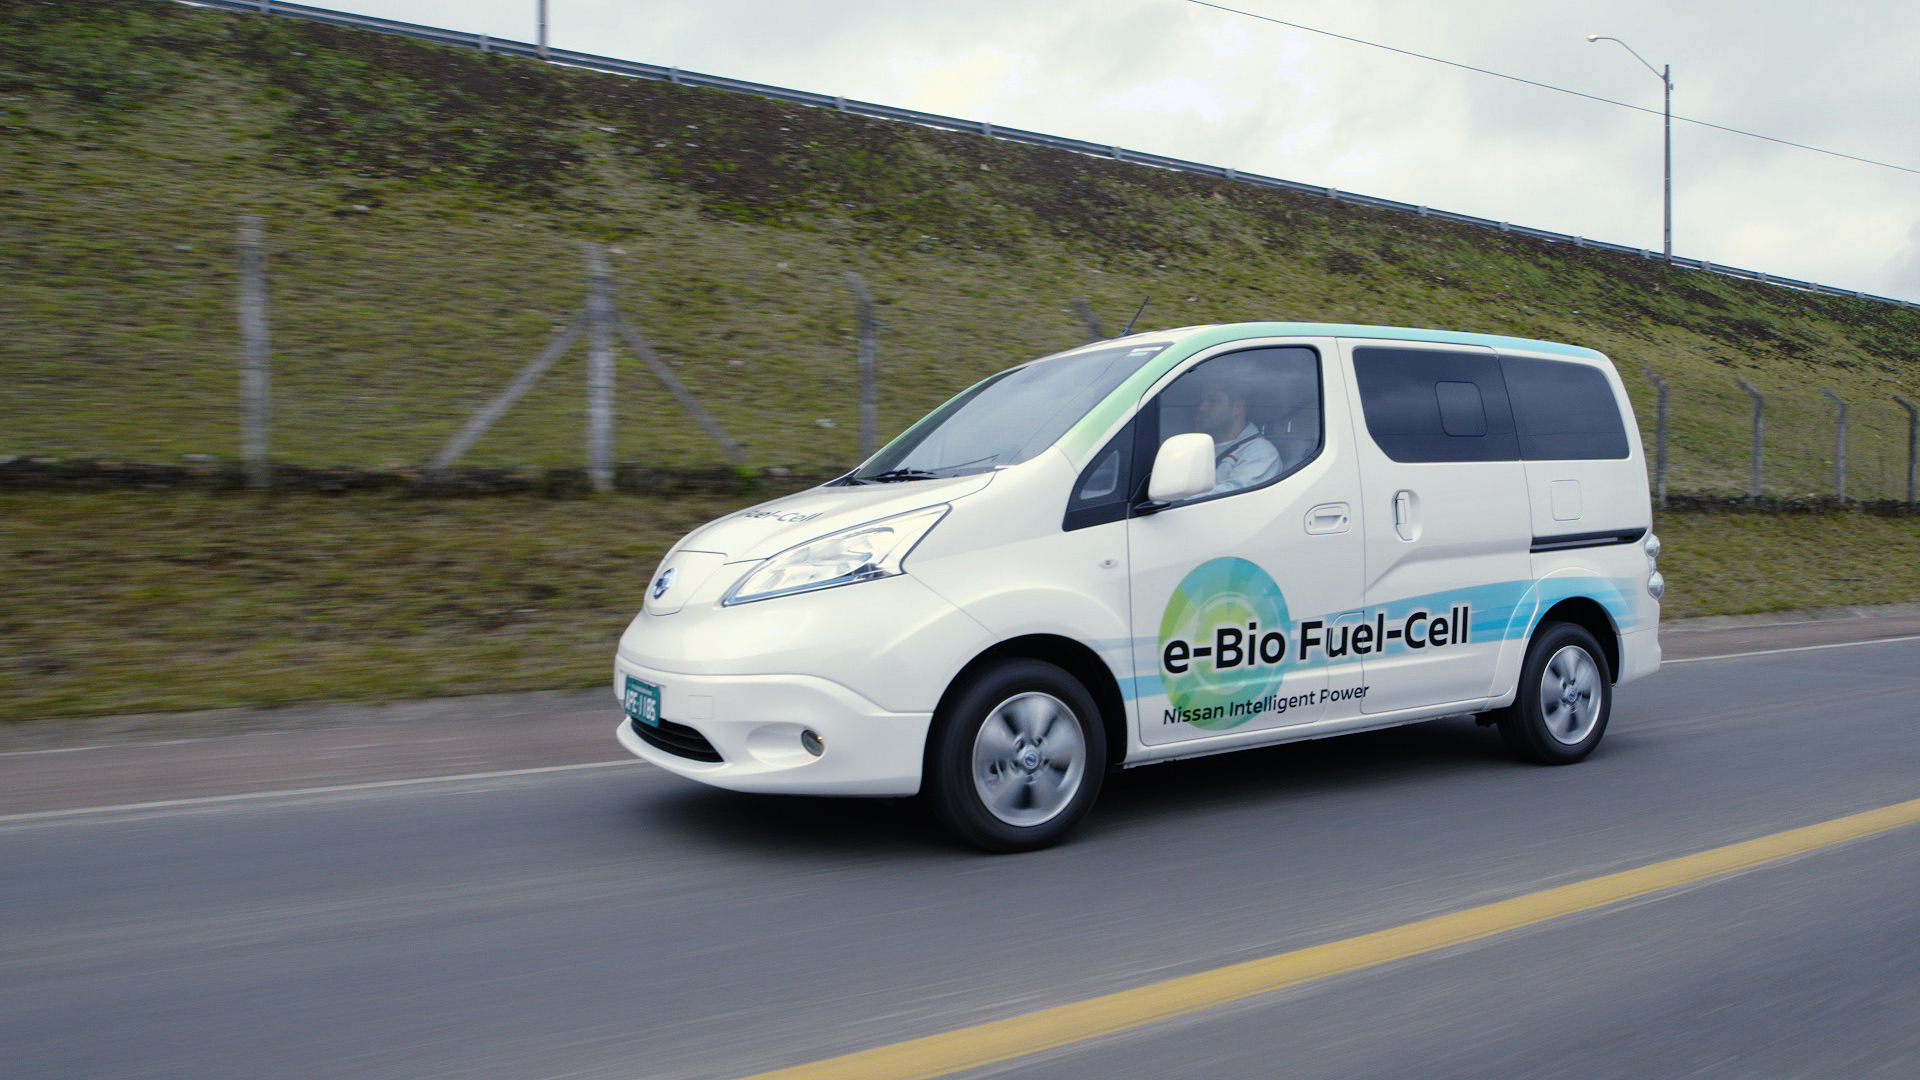 Nissan e Bio Fuel Cell Prototype Vehicle 014